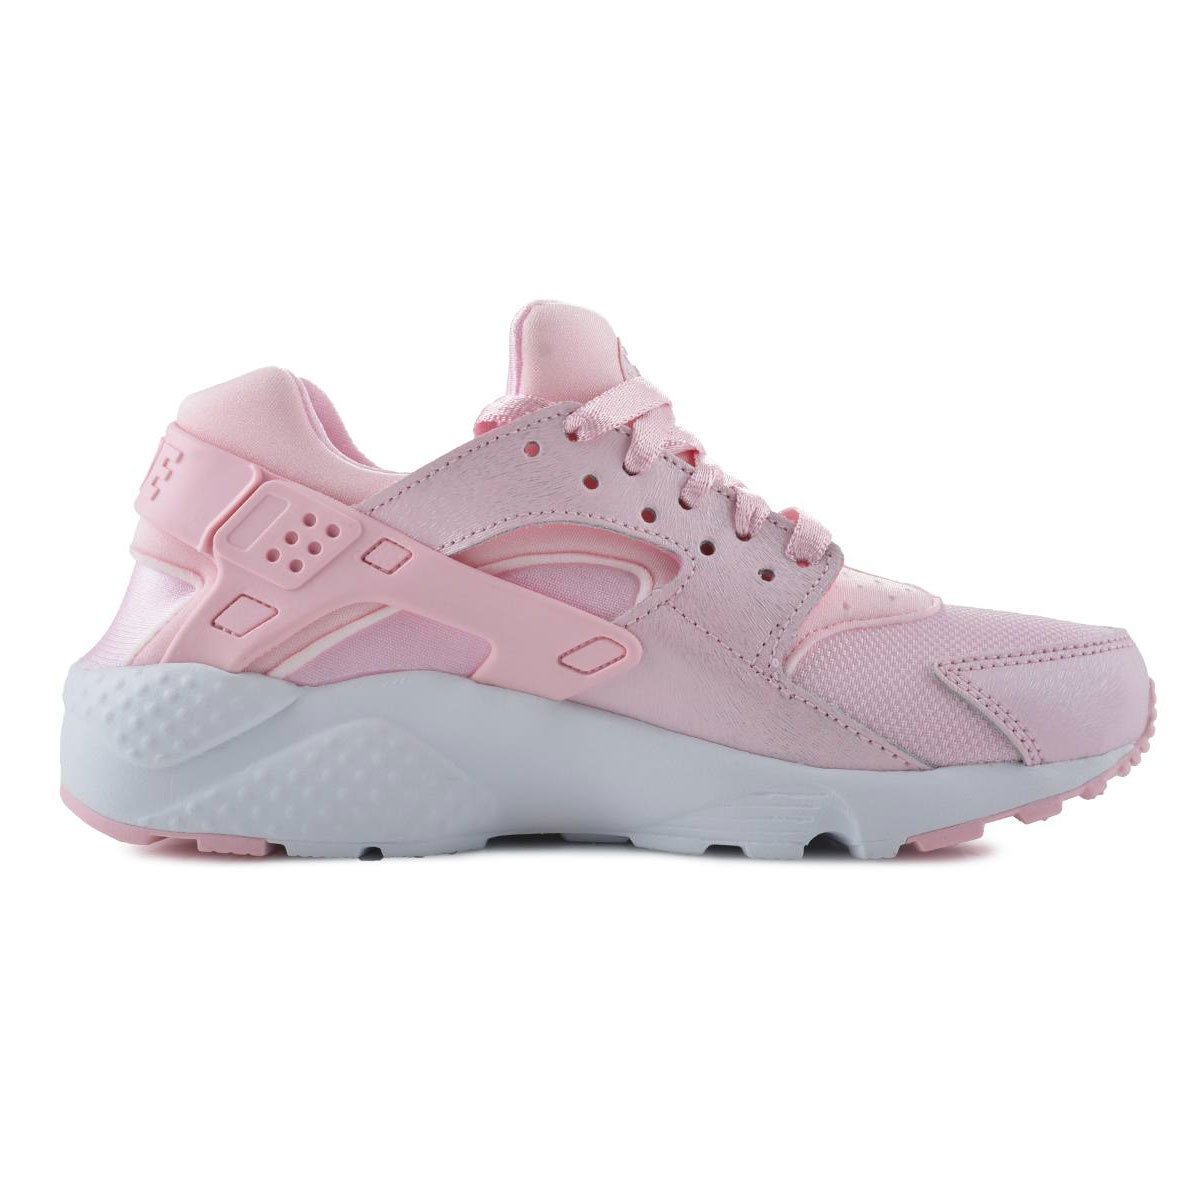 9273935bbeb19 NIKE Big Kids Girls Huarache Run Se Gs Pink Prism Pink-White Size 4. 0 US   Buy Online at Low Prices in India - Amazon.in